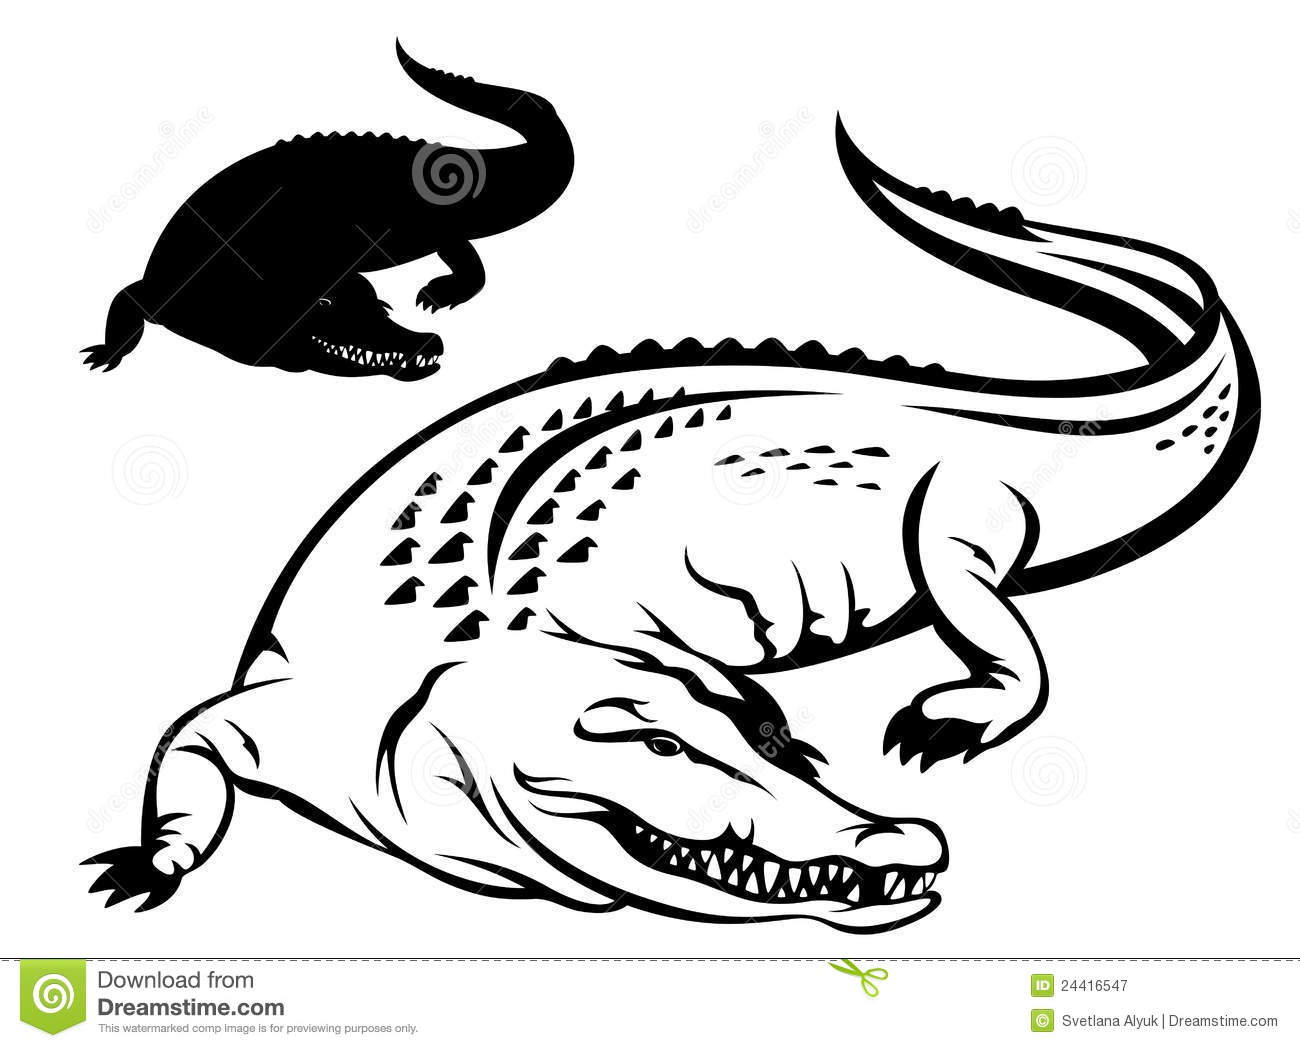 Crocodile vector stock vector. Illustration of dangerous - 24416547 for Clipart Crocodile Black And White  557yll